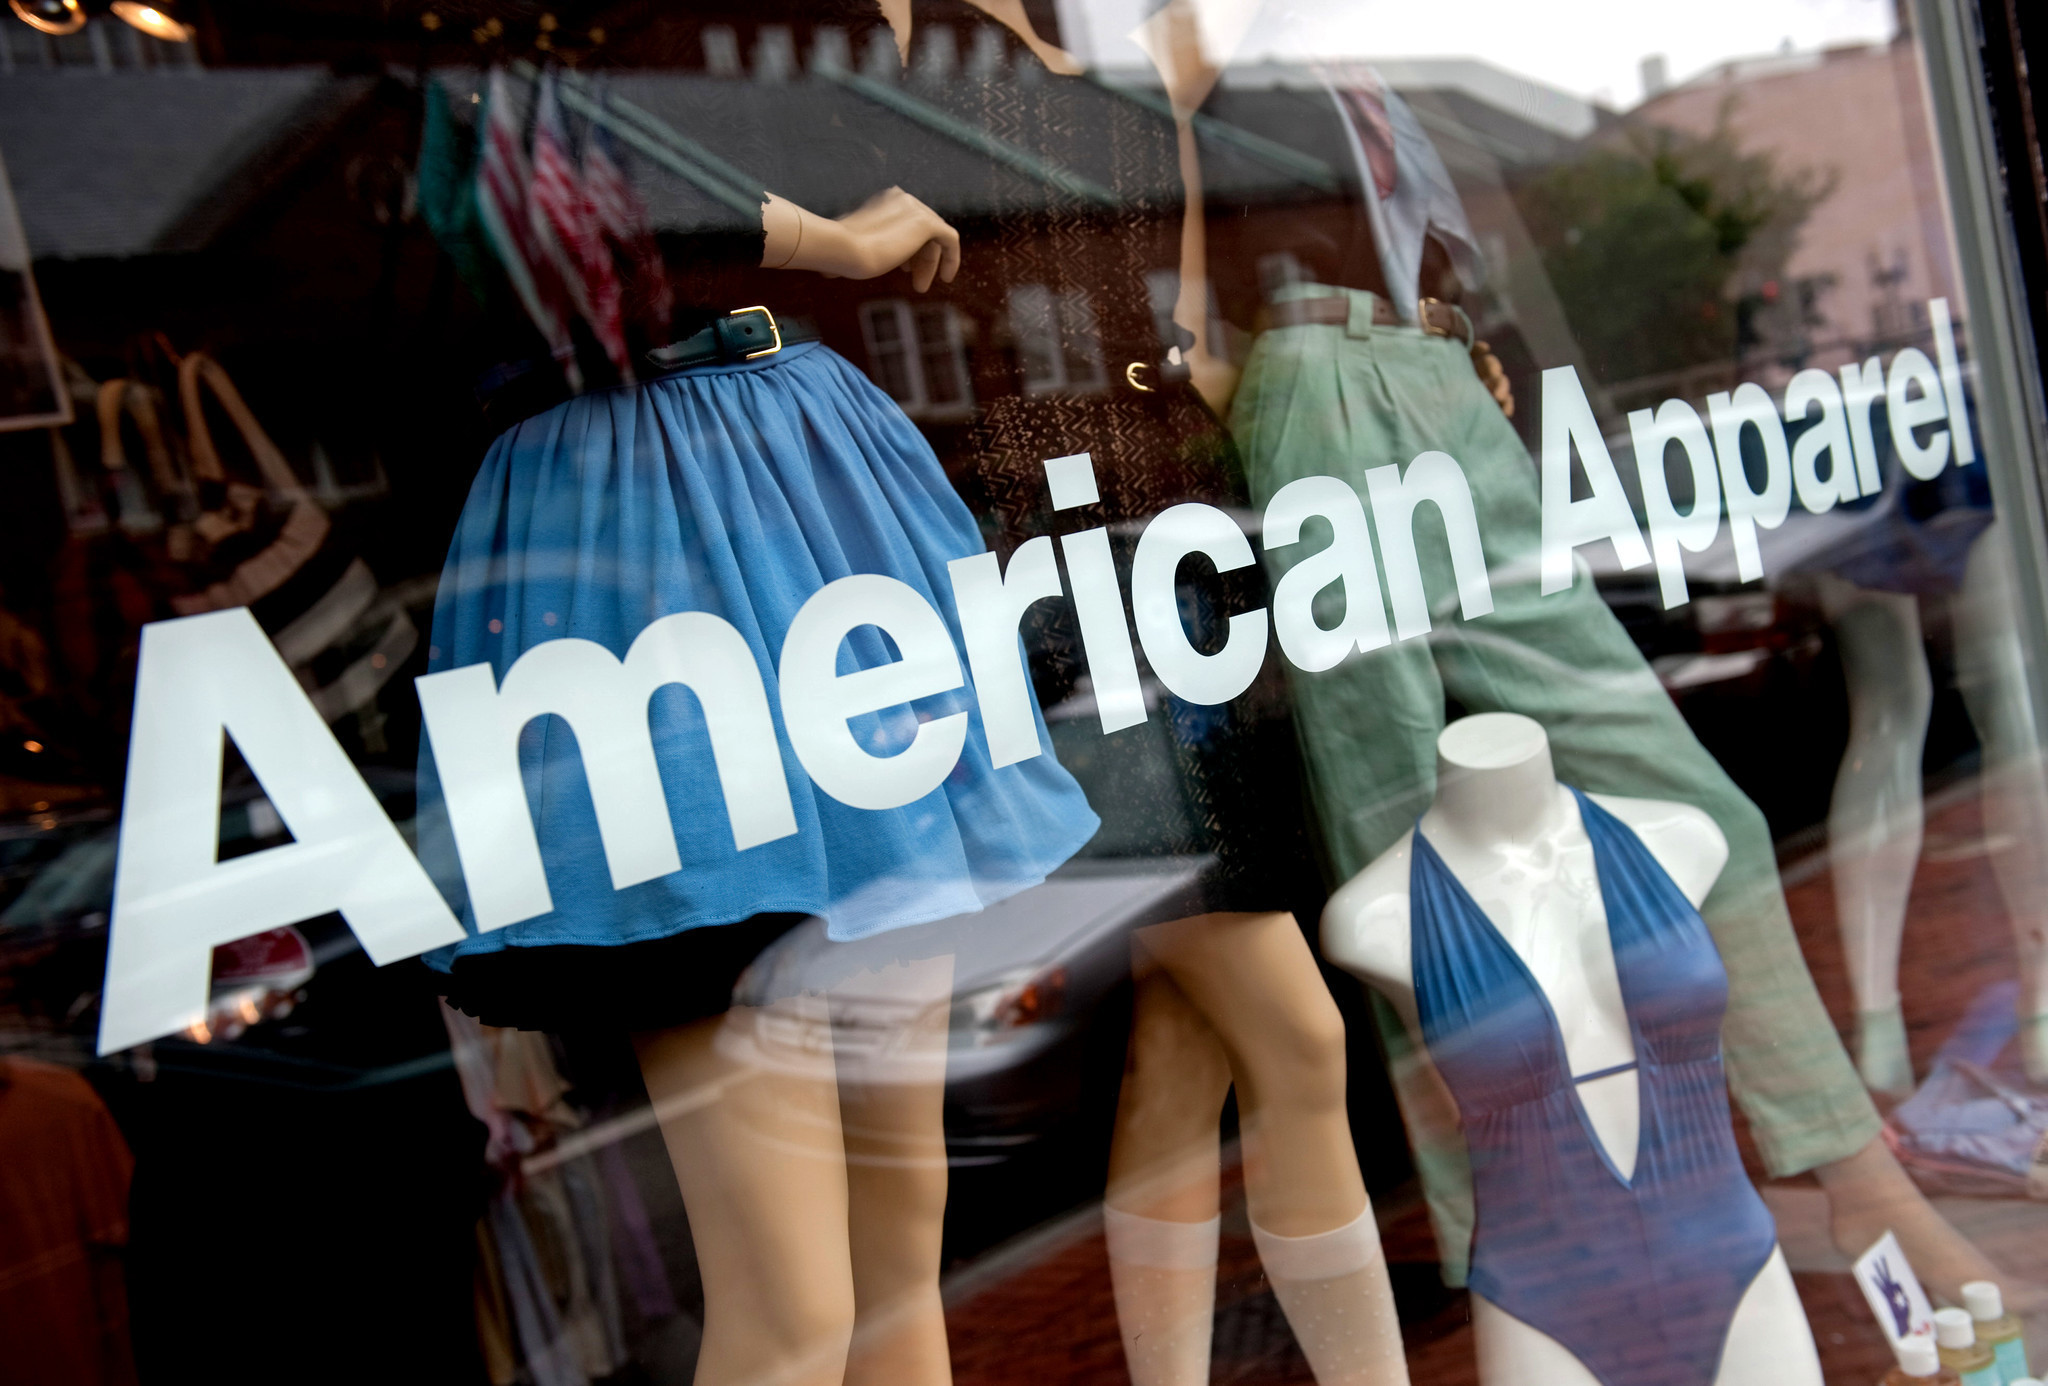 American Apparel bankruptcy deal leaves retail future in doubt